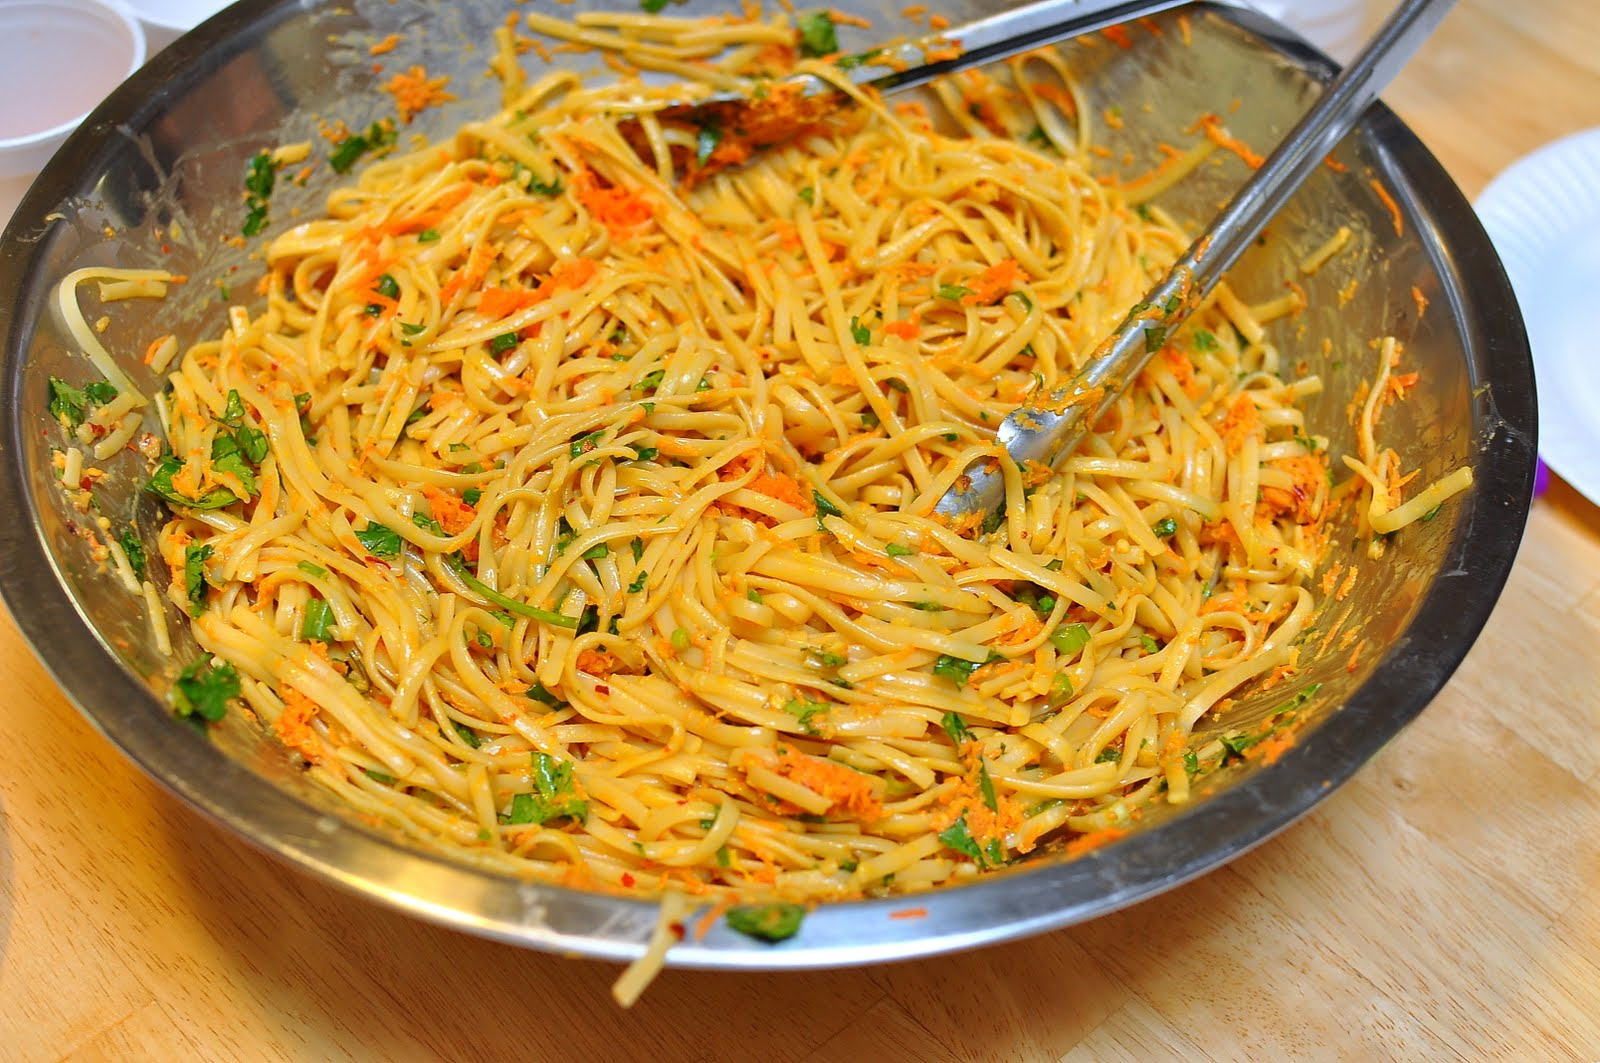 ... Angeles: Recipe of the Month: Asian Noodles with Peanut Butter Sauce